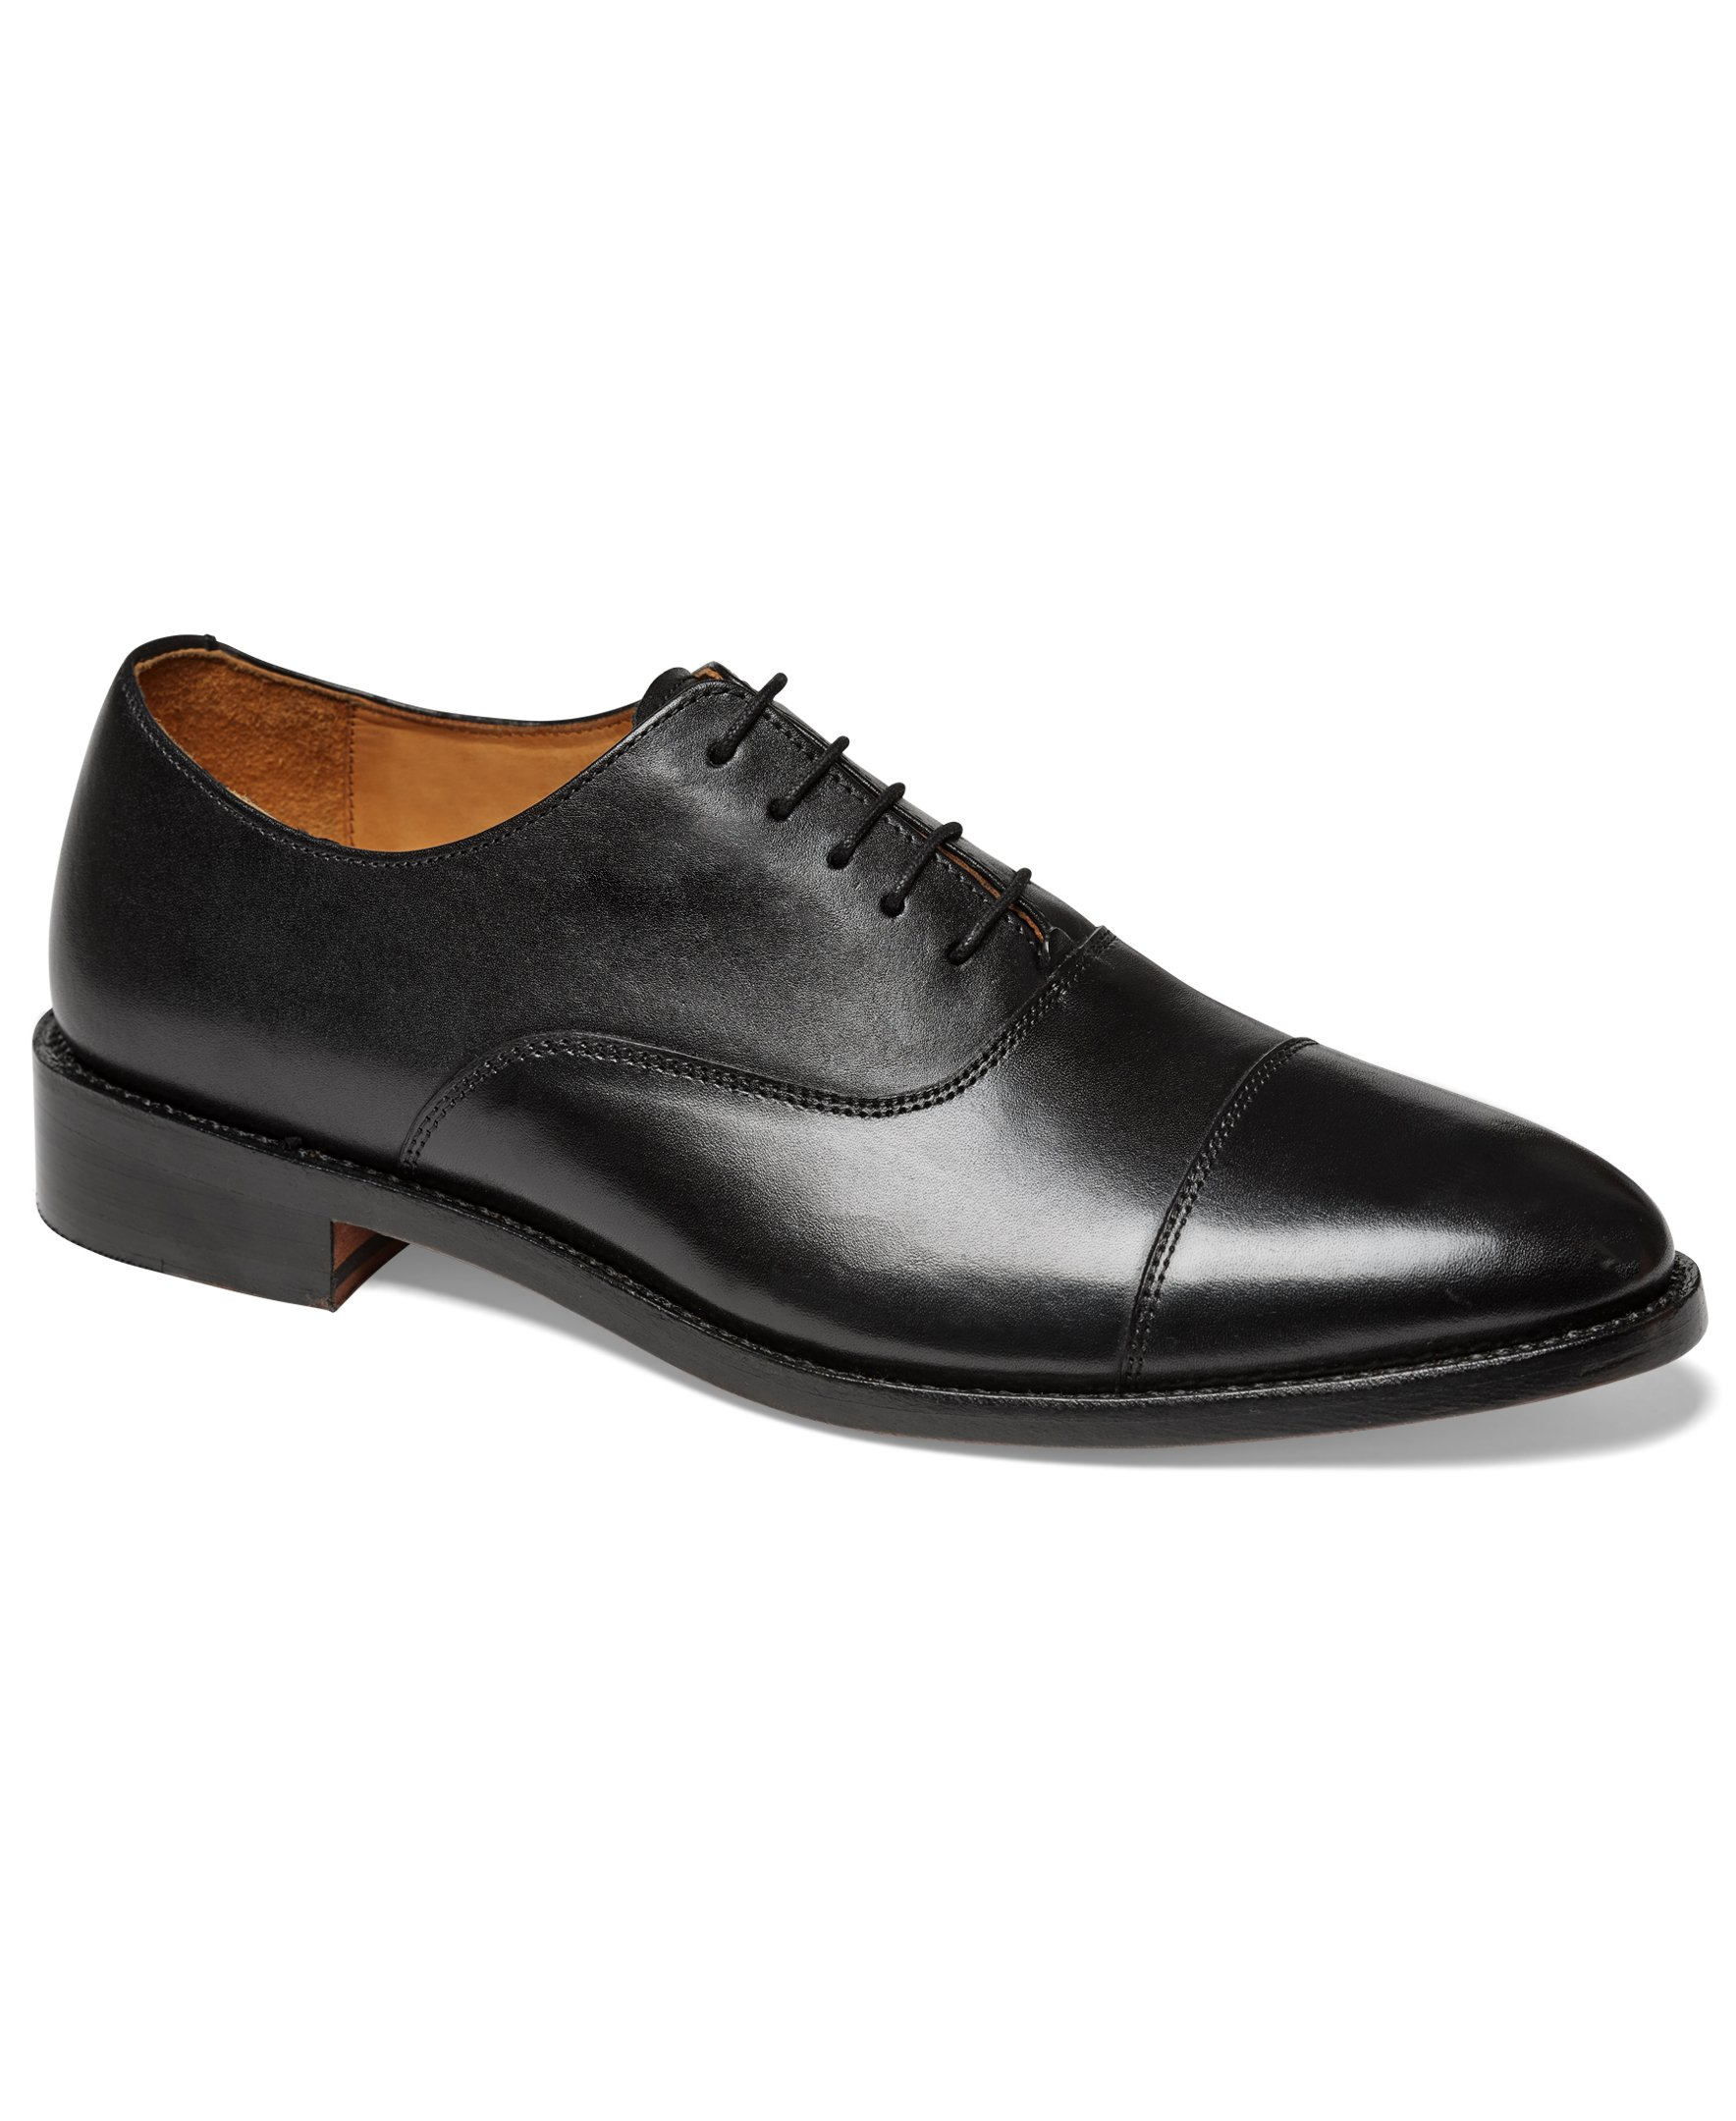 Anthony Veer Mens Clinton Cap-Toe Oxford Leather Shoe In Goodyear Welted Construction (10 D, Black)